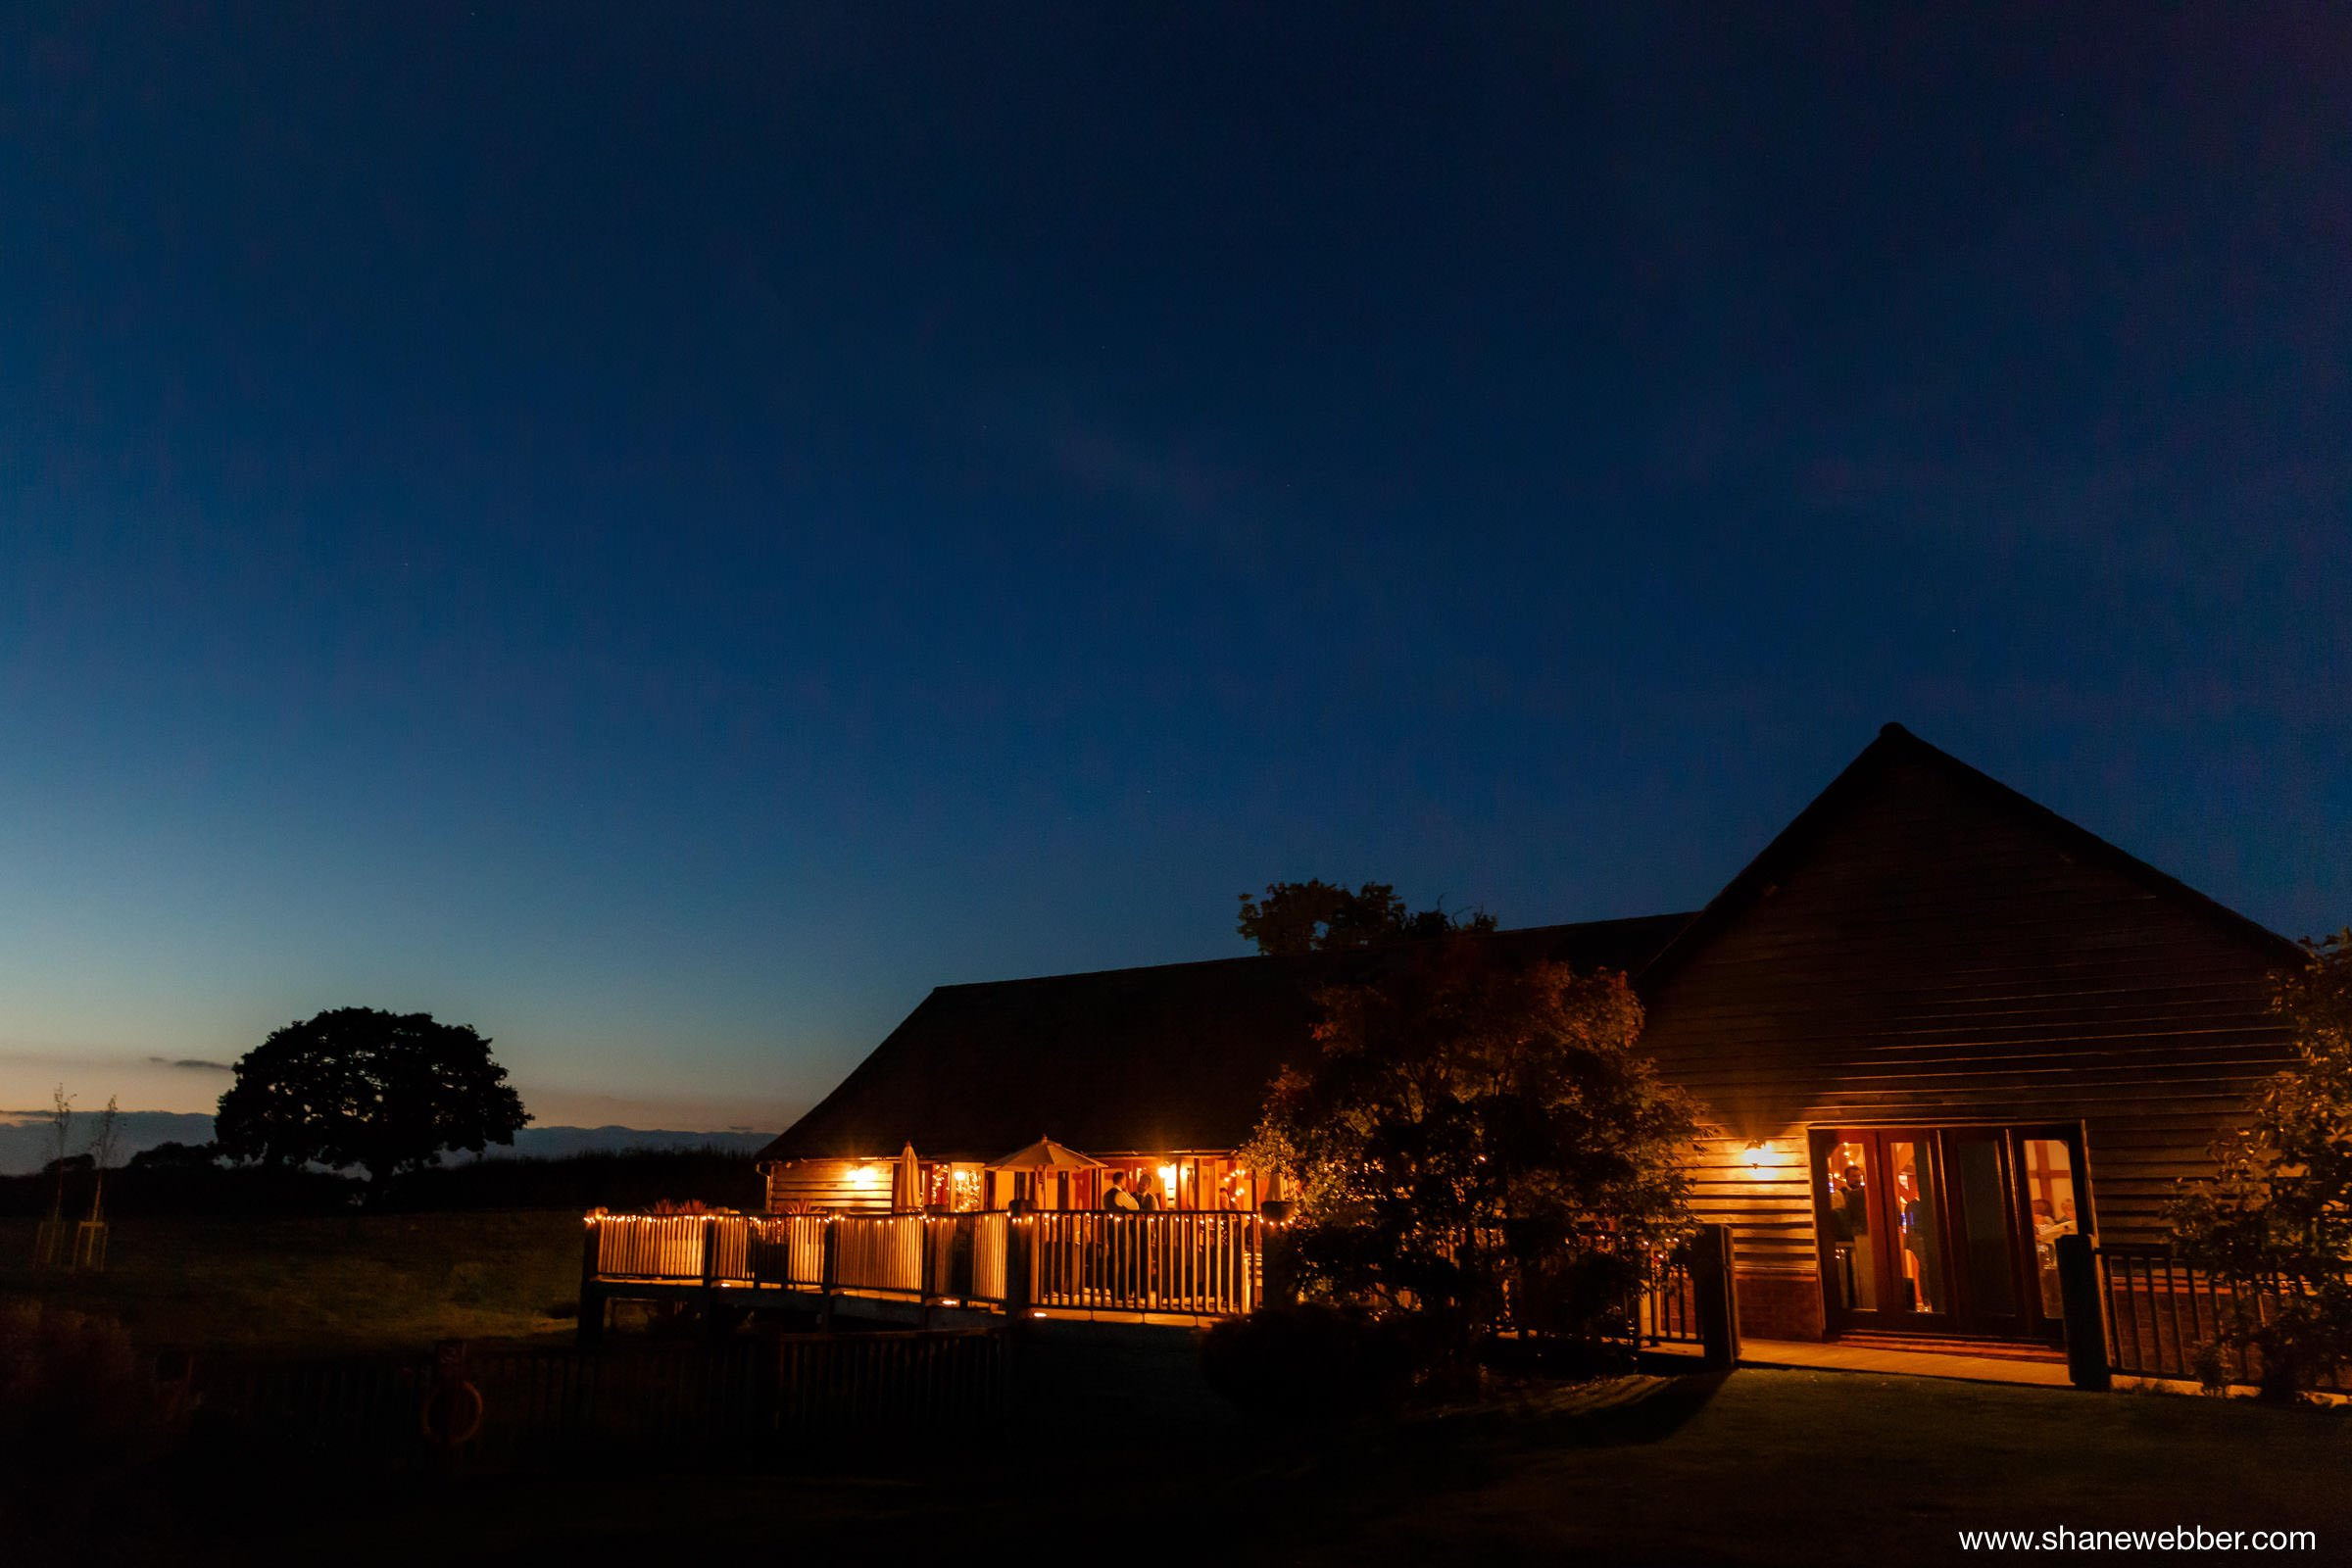 night time Sandhole oak barn